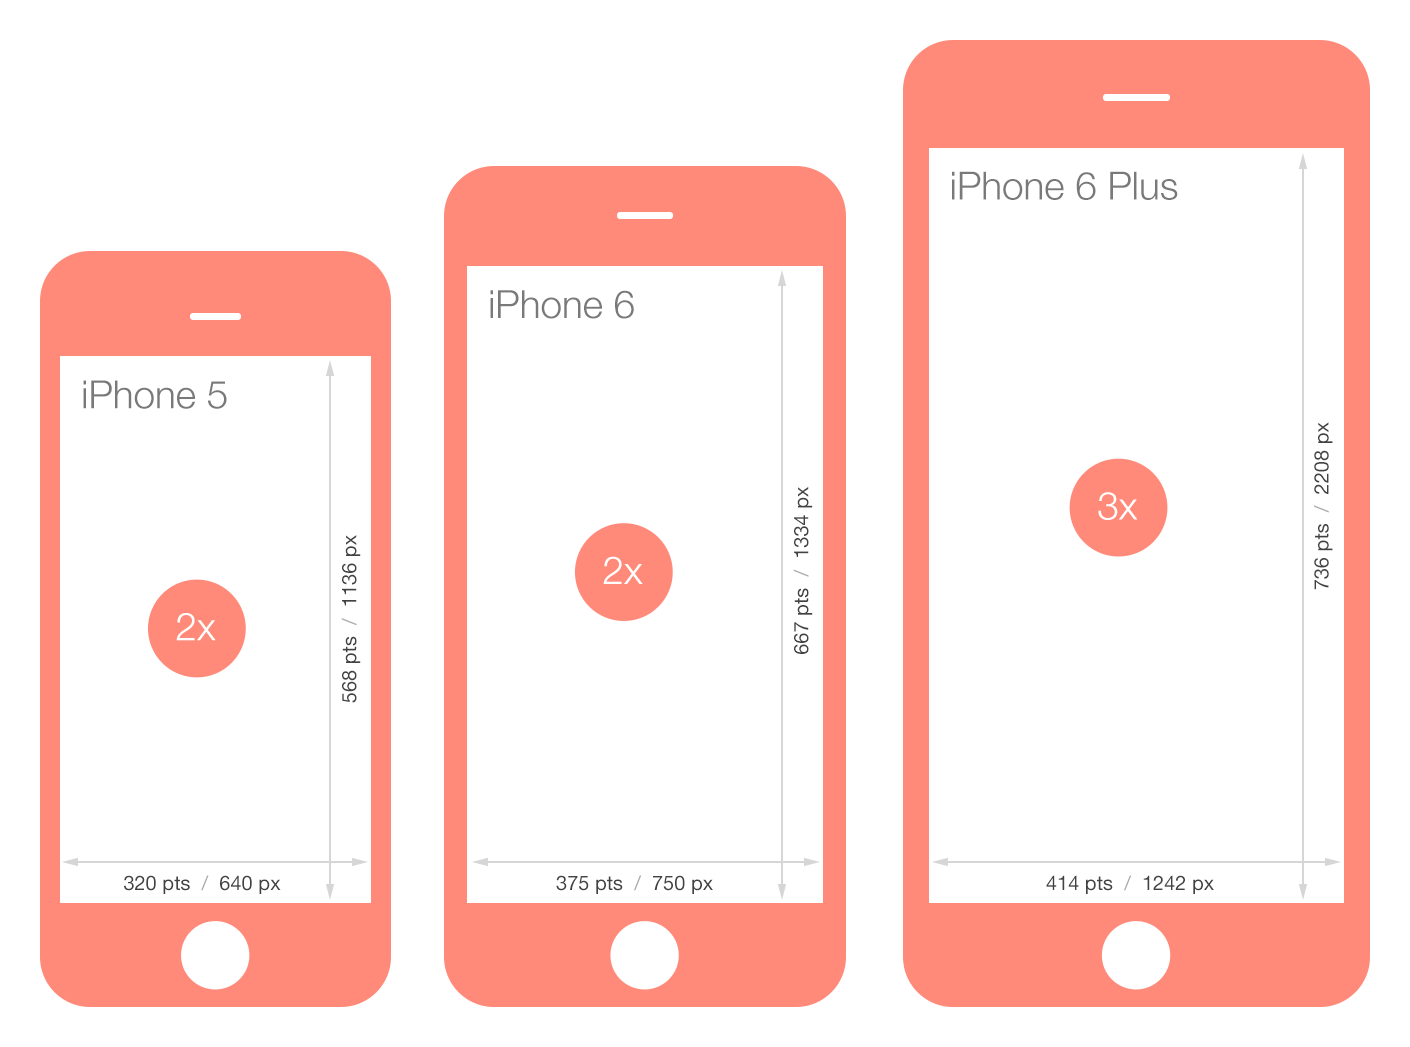 iphone 5 length comparison of screen sizes between iphone 5 iphone 6 and 11007